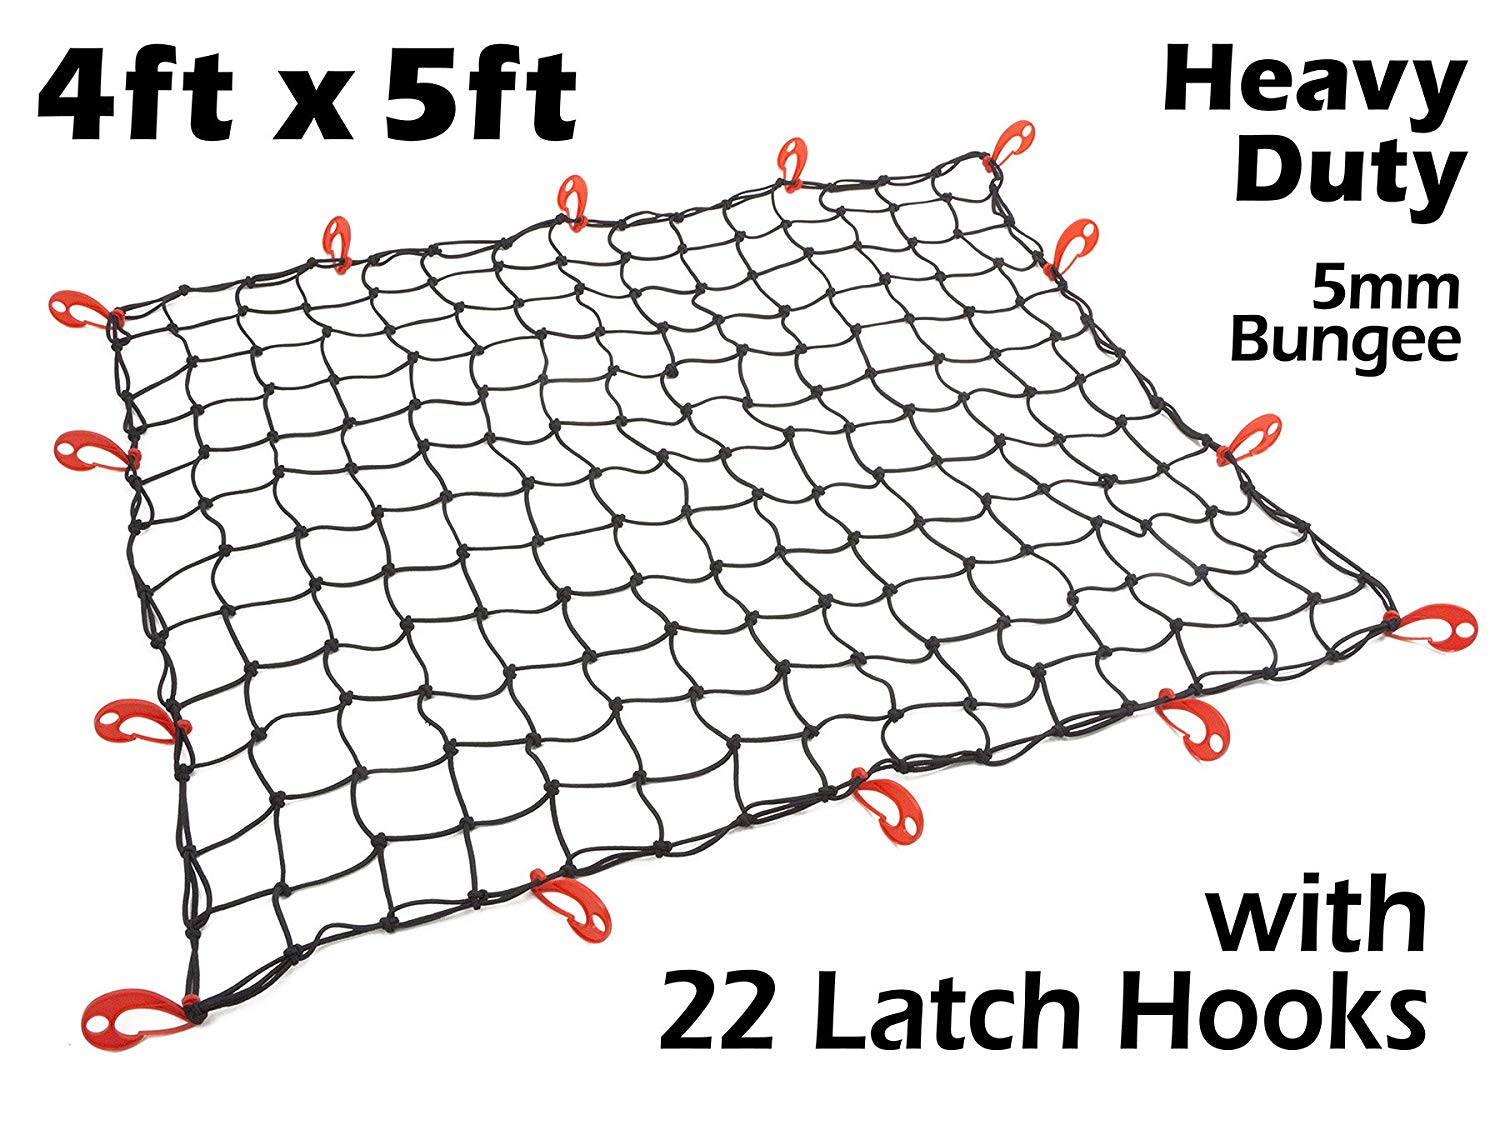 Black Net Stretches to 72 x 90 4ft x 5ft PowerTye Mfg EXTREME Duty 6mm Bungee Elastic Cargo Net 22 Adjustable Large Hooks